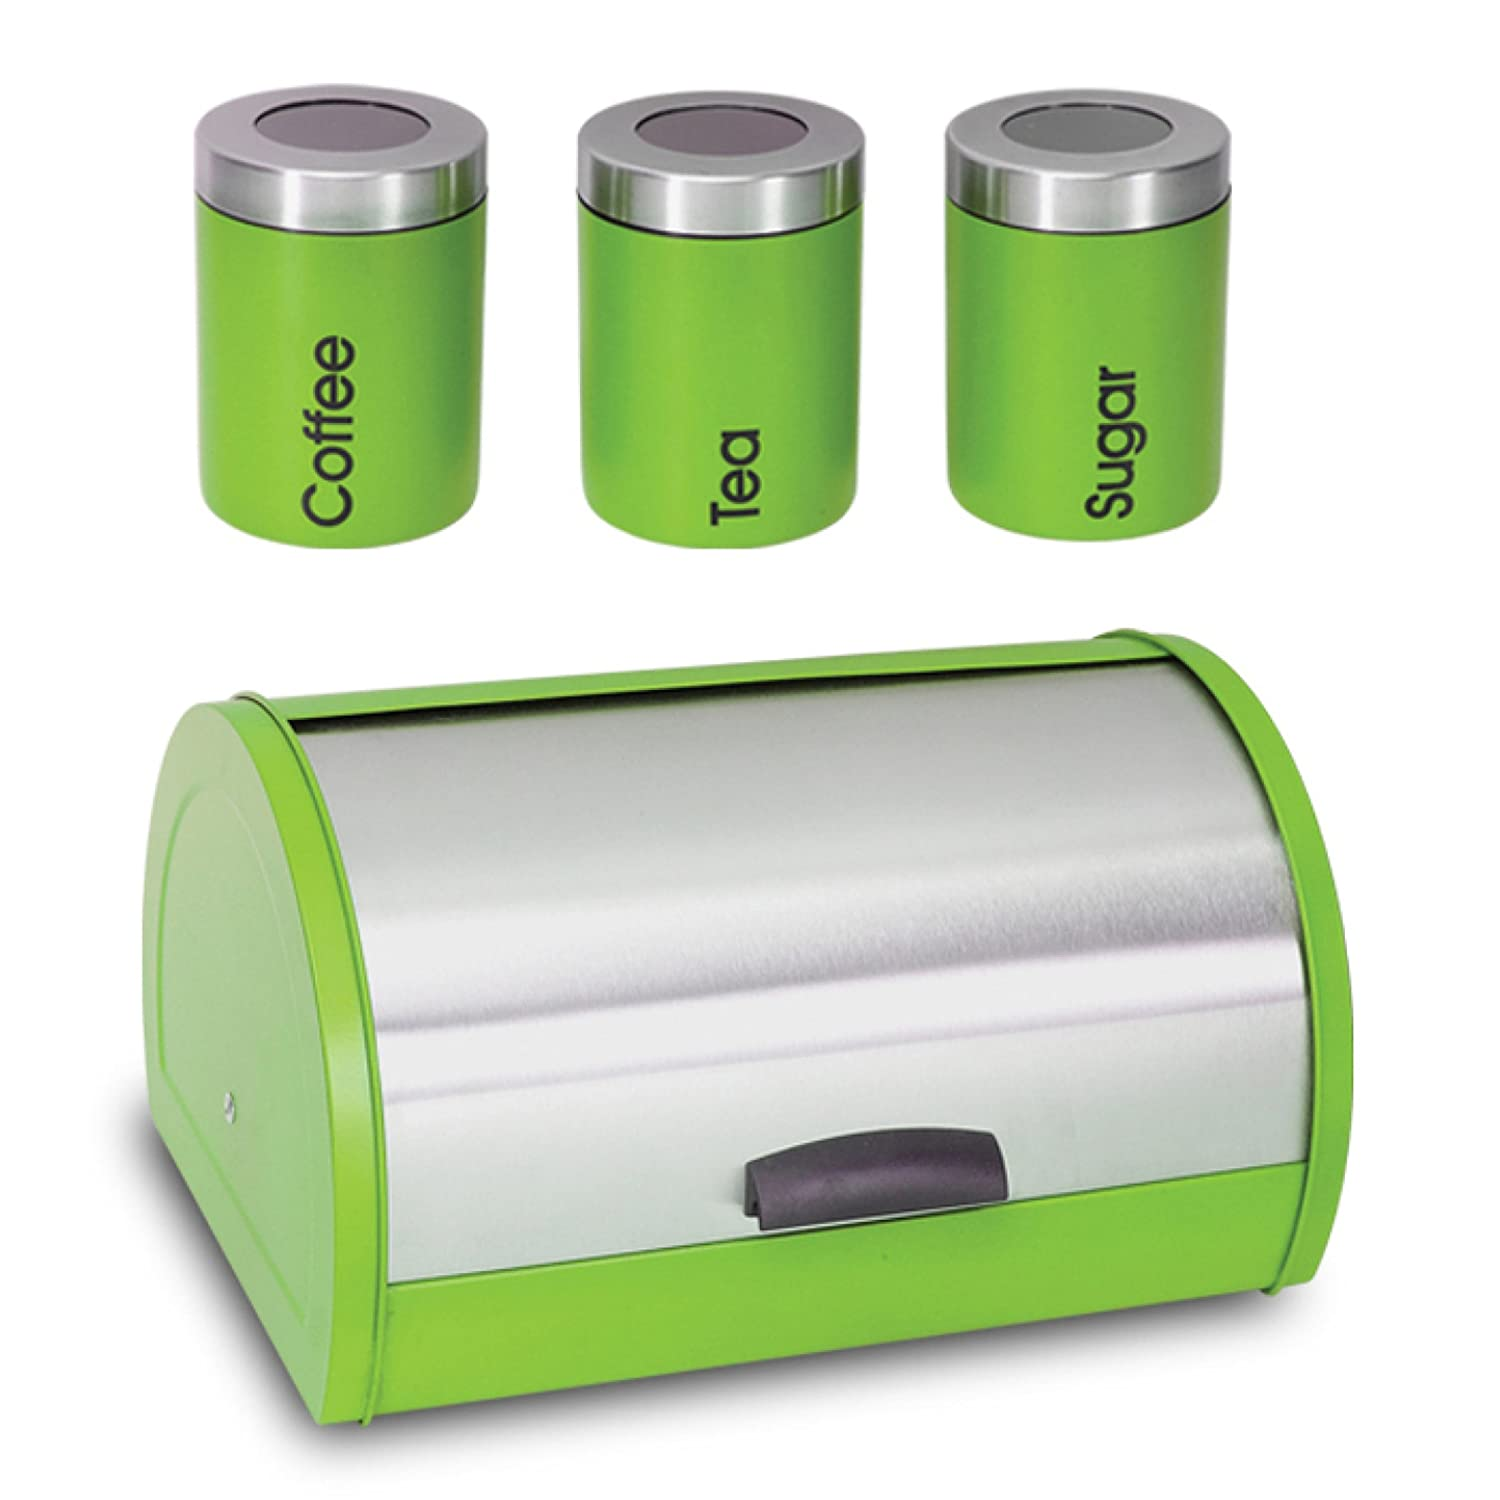 Details about 4Pcs Green or Orange Bread Bin Set Stainless with Tea